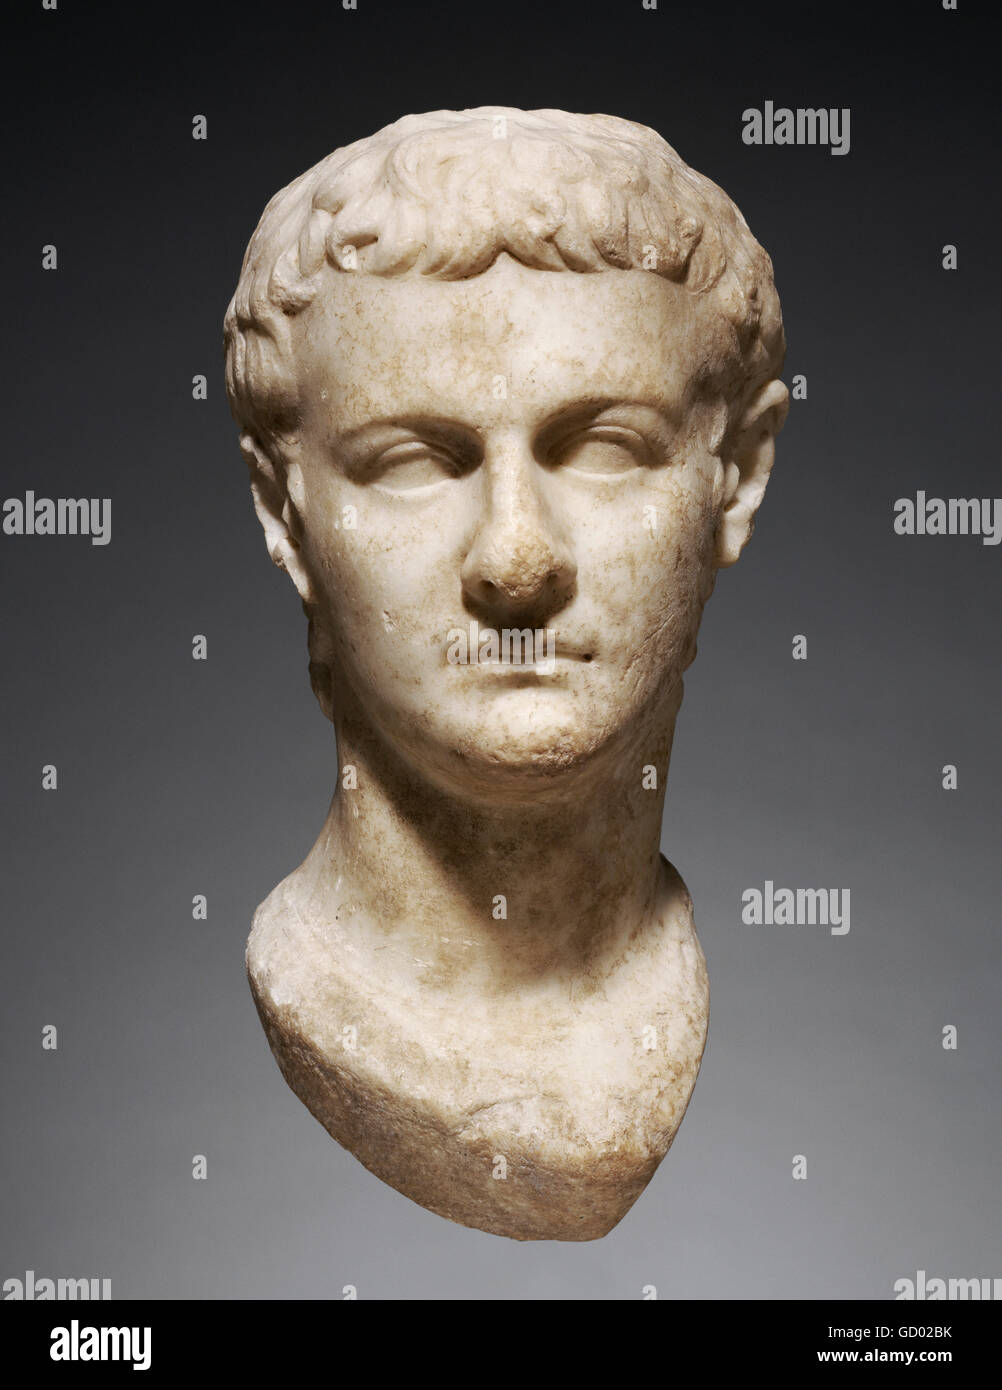 Caligula. Marble head of Emperor Caligula (AD 12 - AD 41), who ruled between AD 37 and 41, dated c.AD 40. - Stock Image